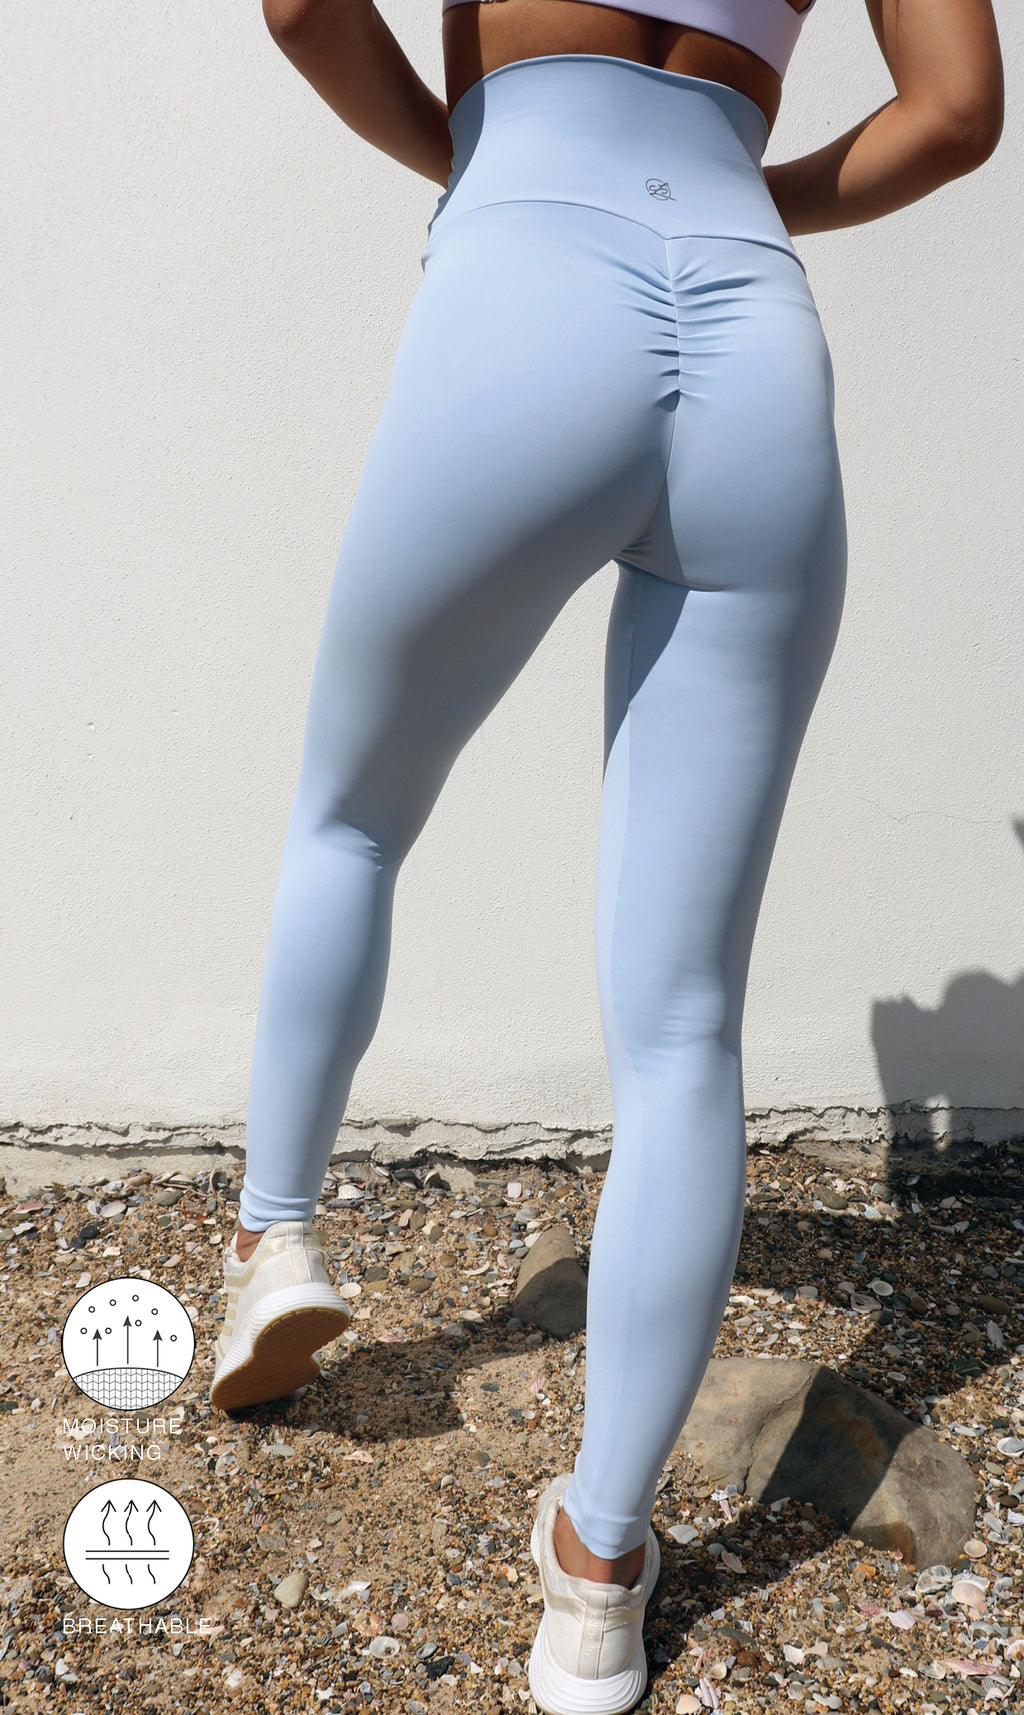 Rear view: Girl in ultra high waist, blue cloud body luxe scrunch bum leggings